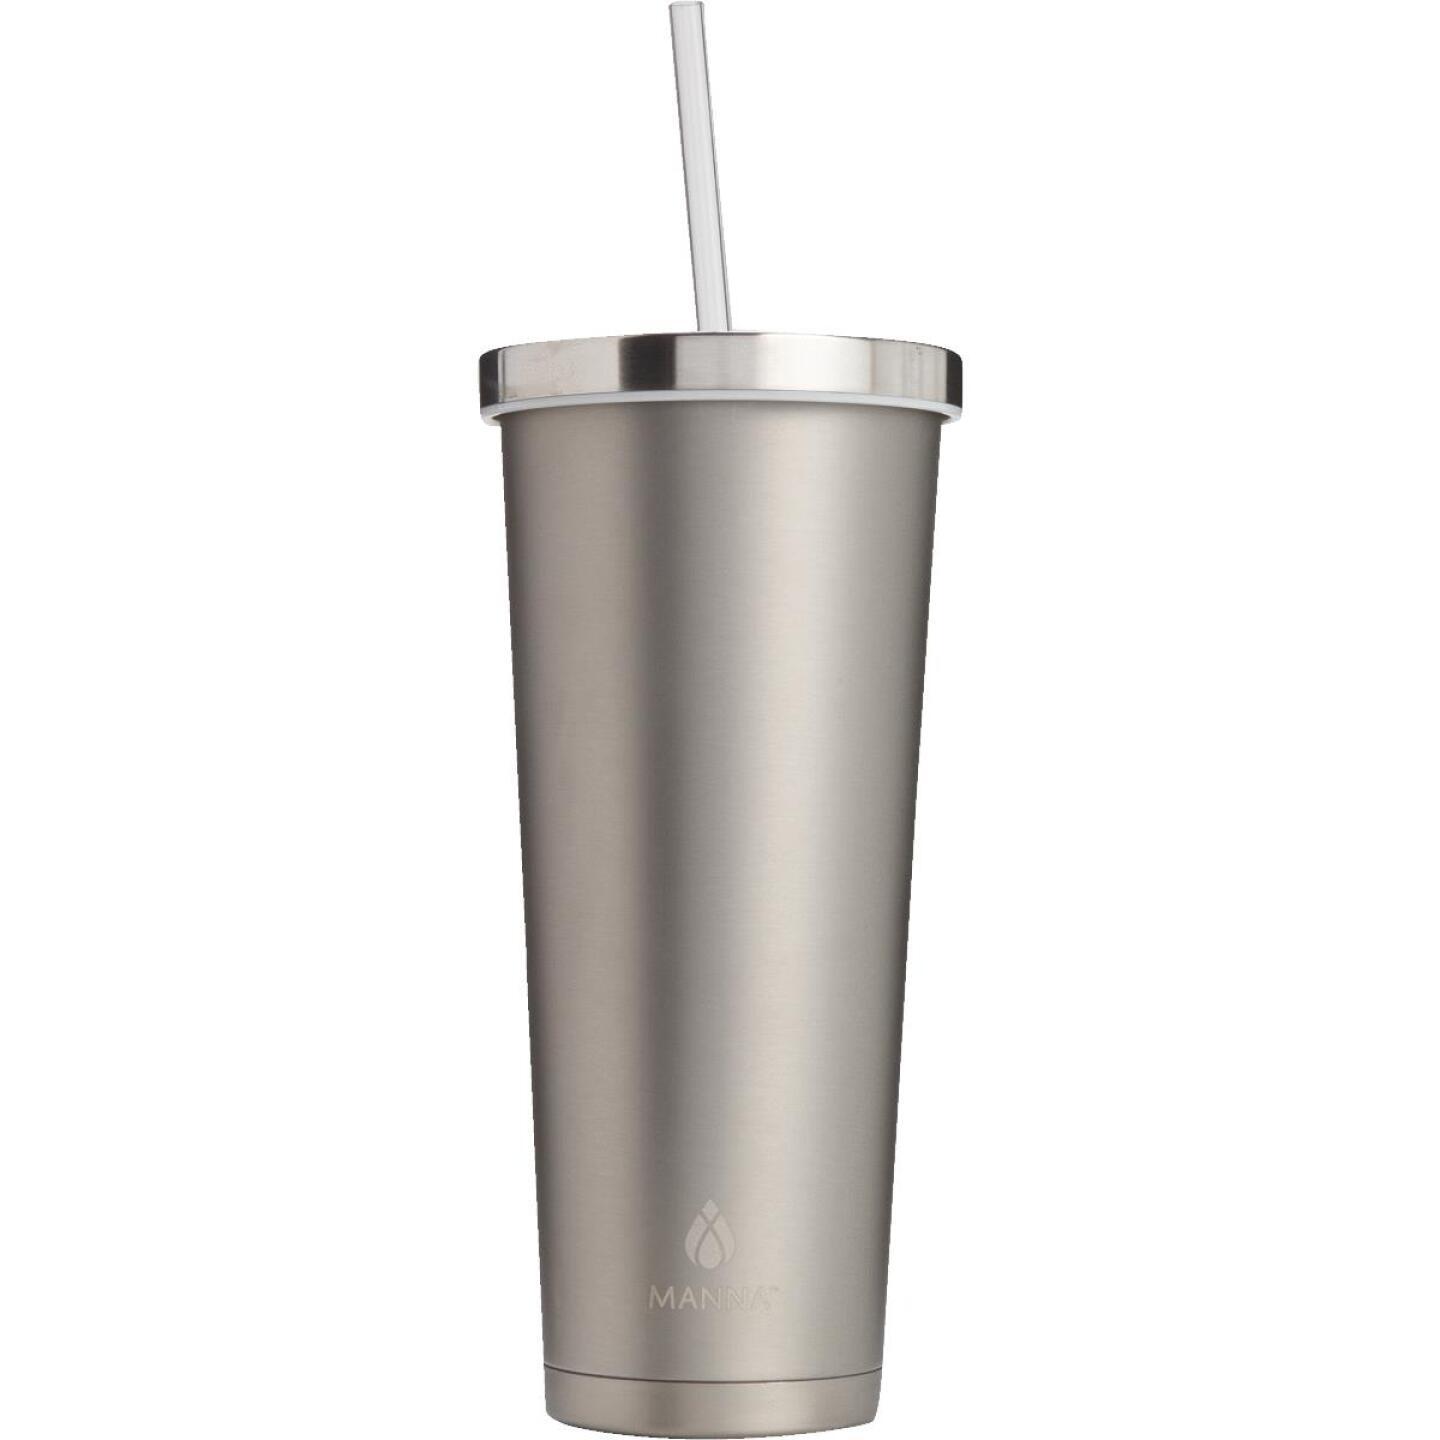 Manna 24 Oz. Stainless Steel Chilly Insulated Tumbler Image 1